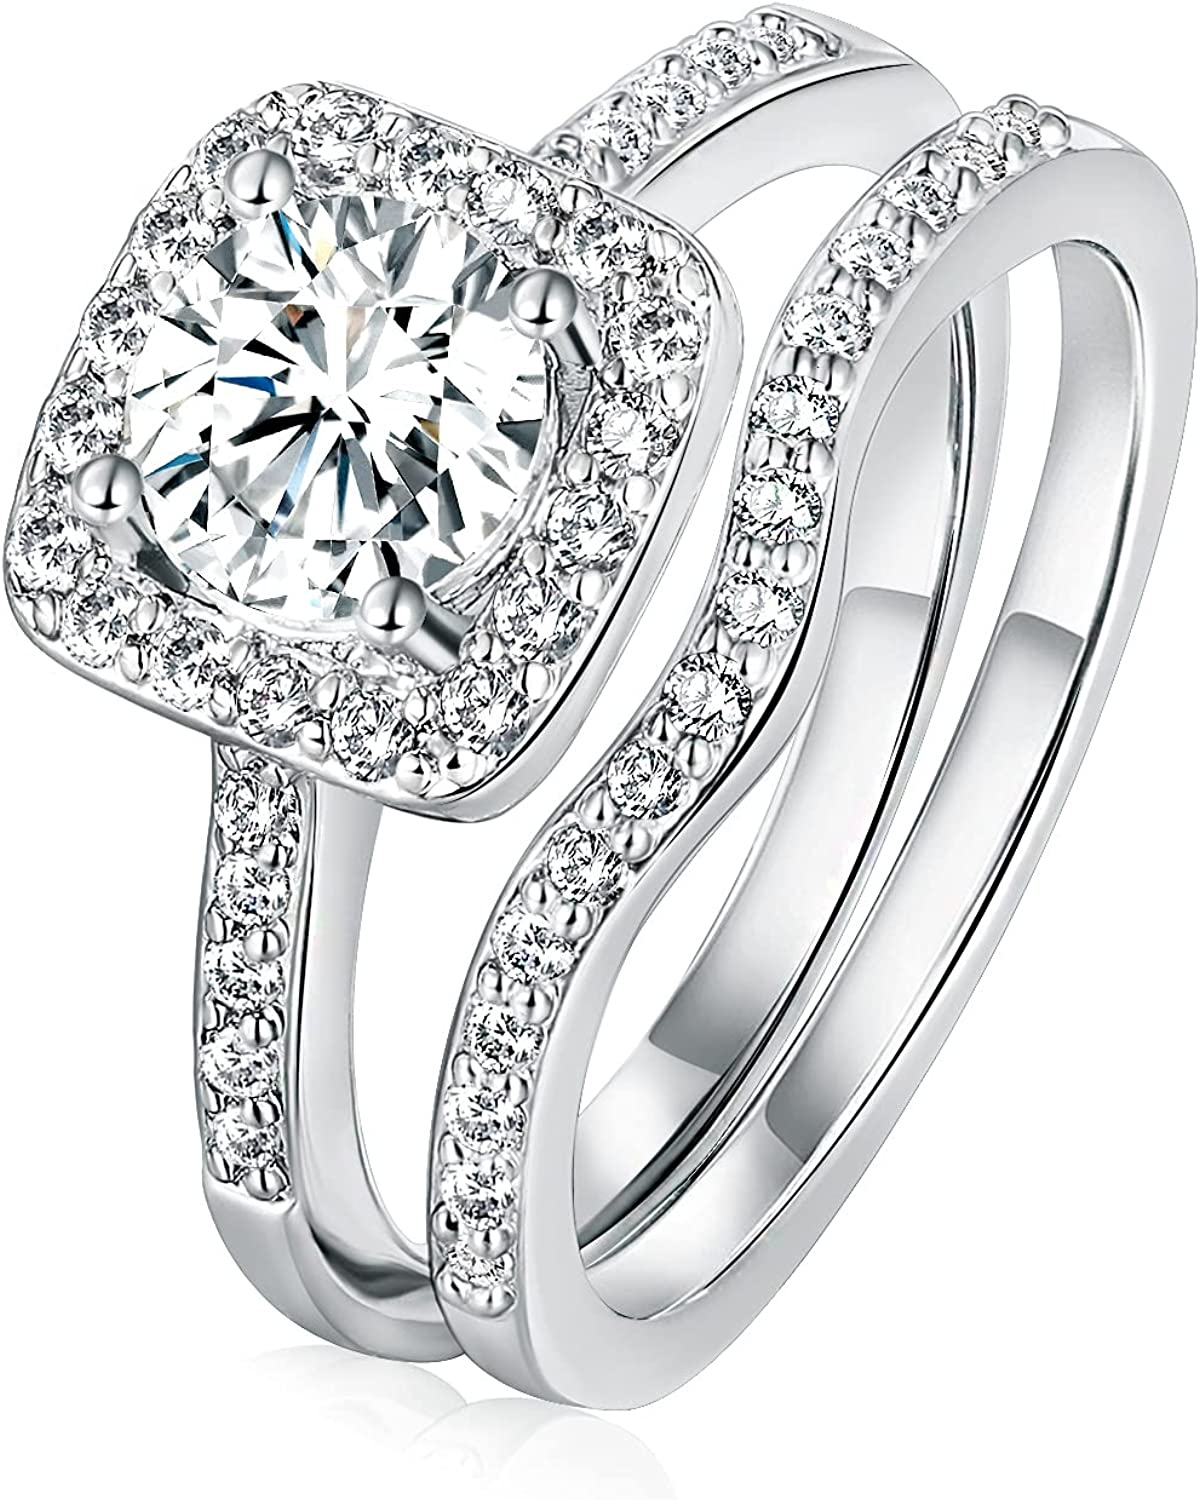 Engagement Wedding Rings Set for Women, 18K White Gold Plated Two-in-One Cubic Zirconia Eternity Bridal Rings Bands